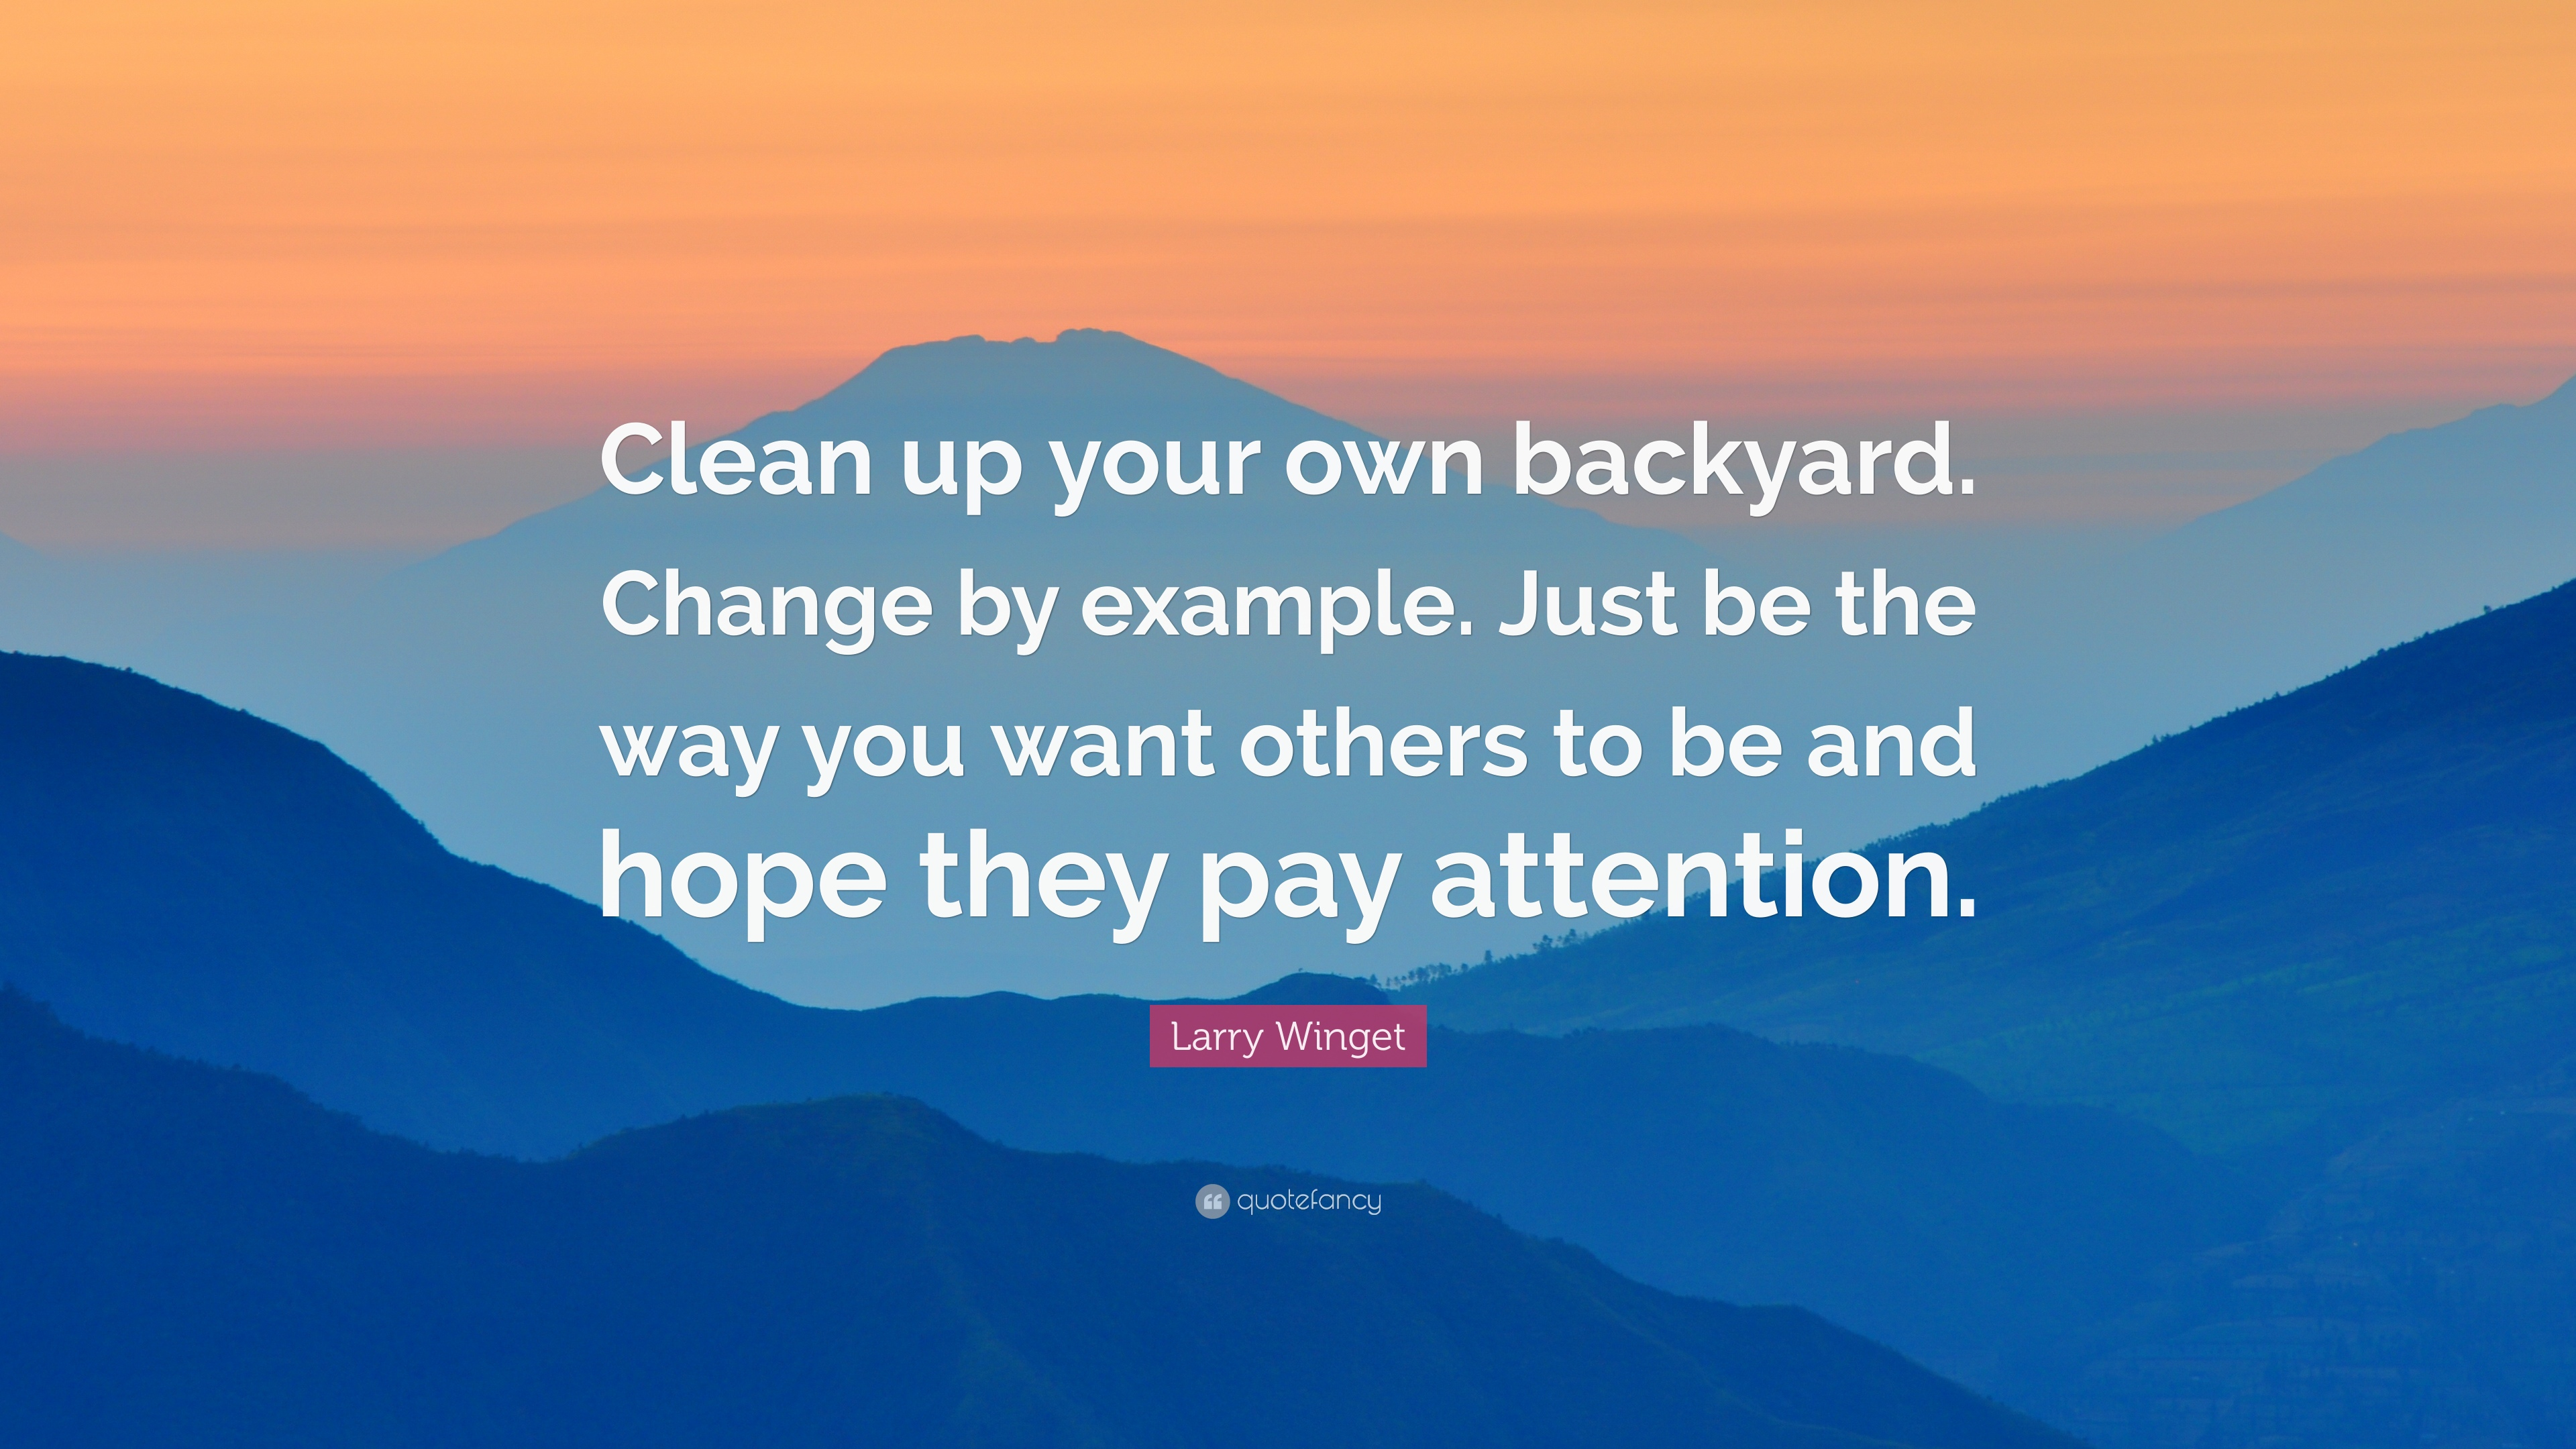 larry winget quote clean up your own backyard change by